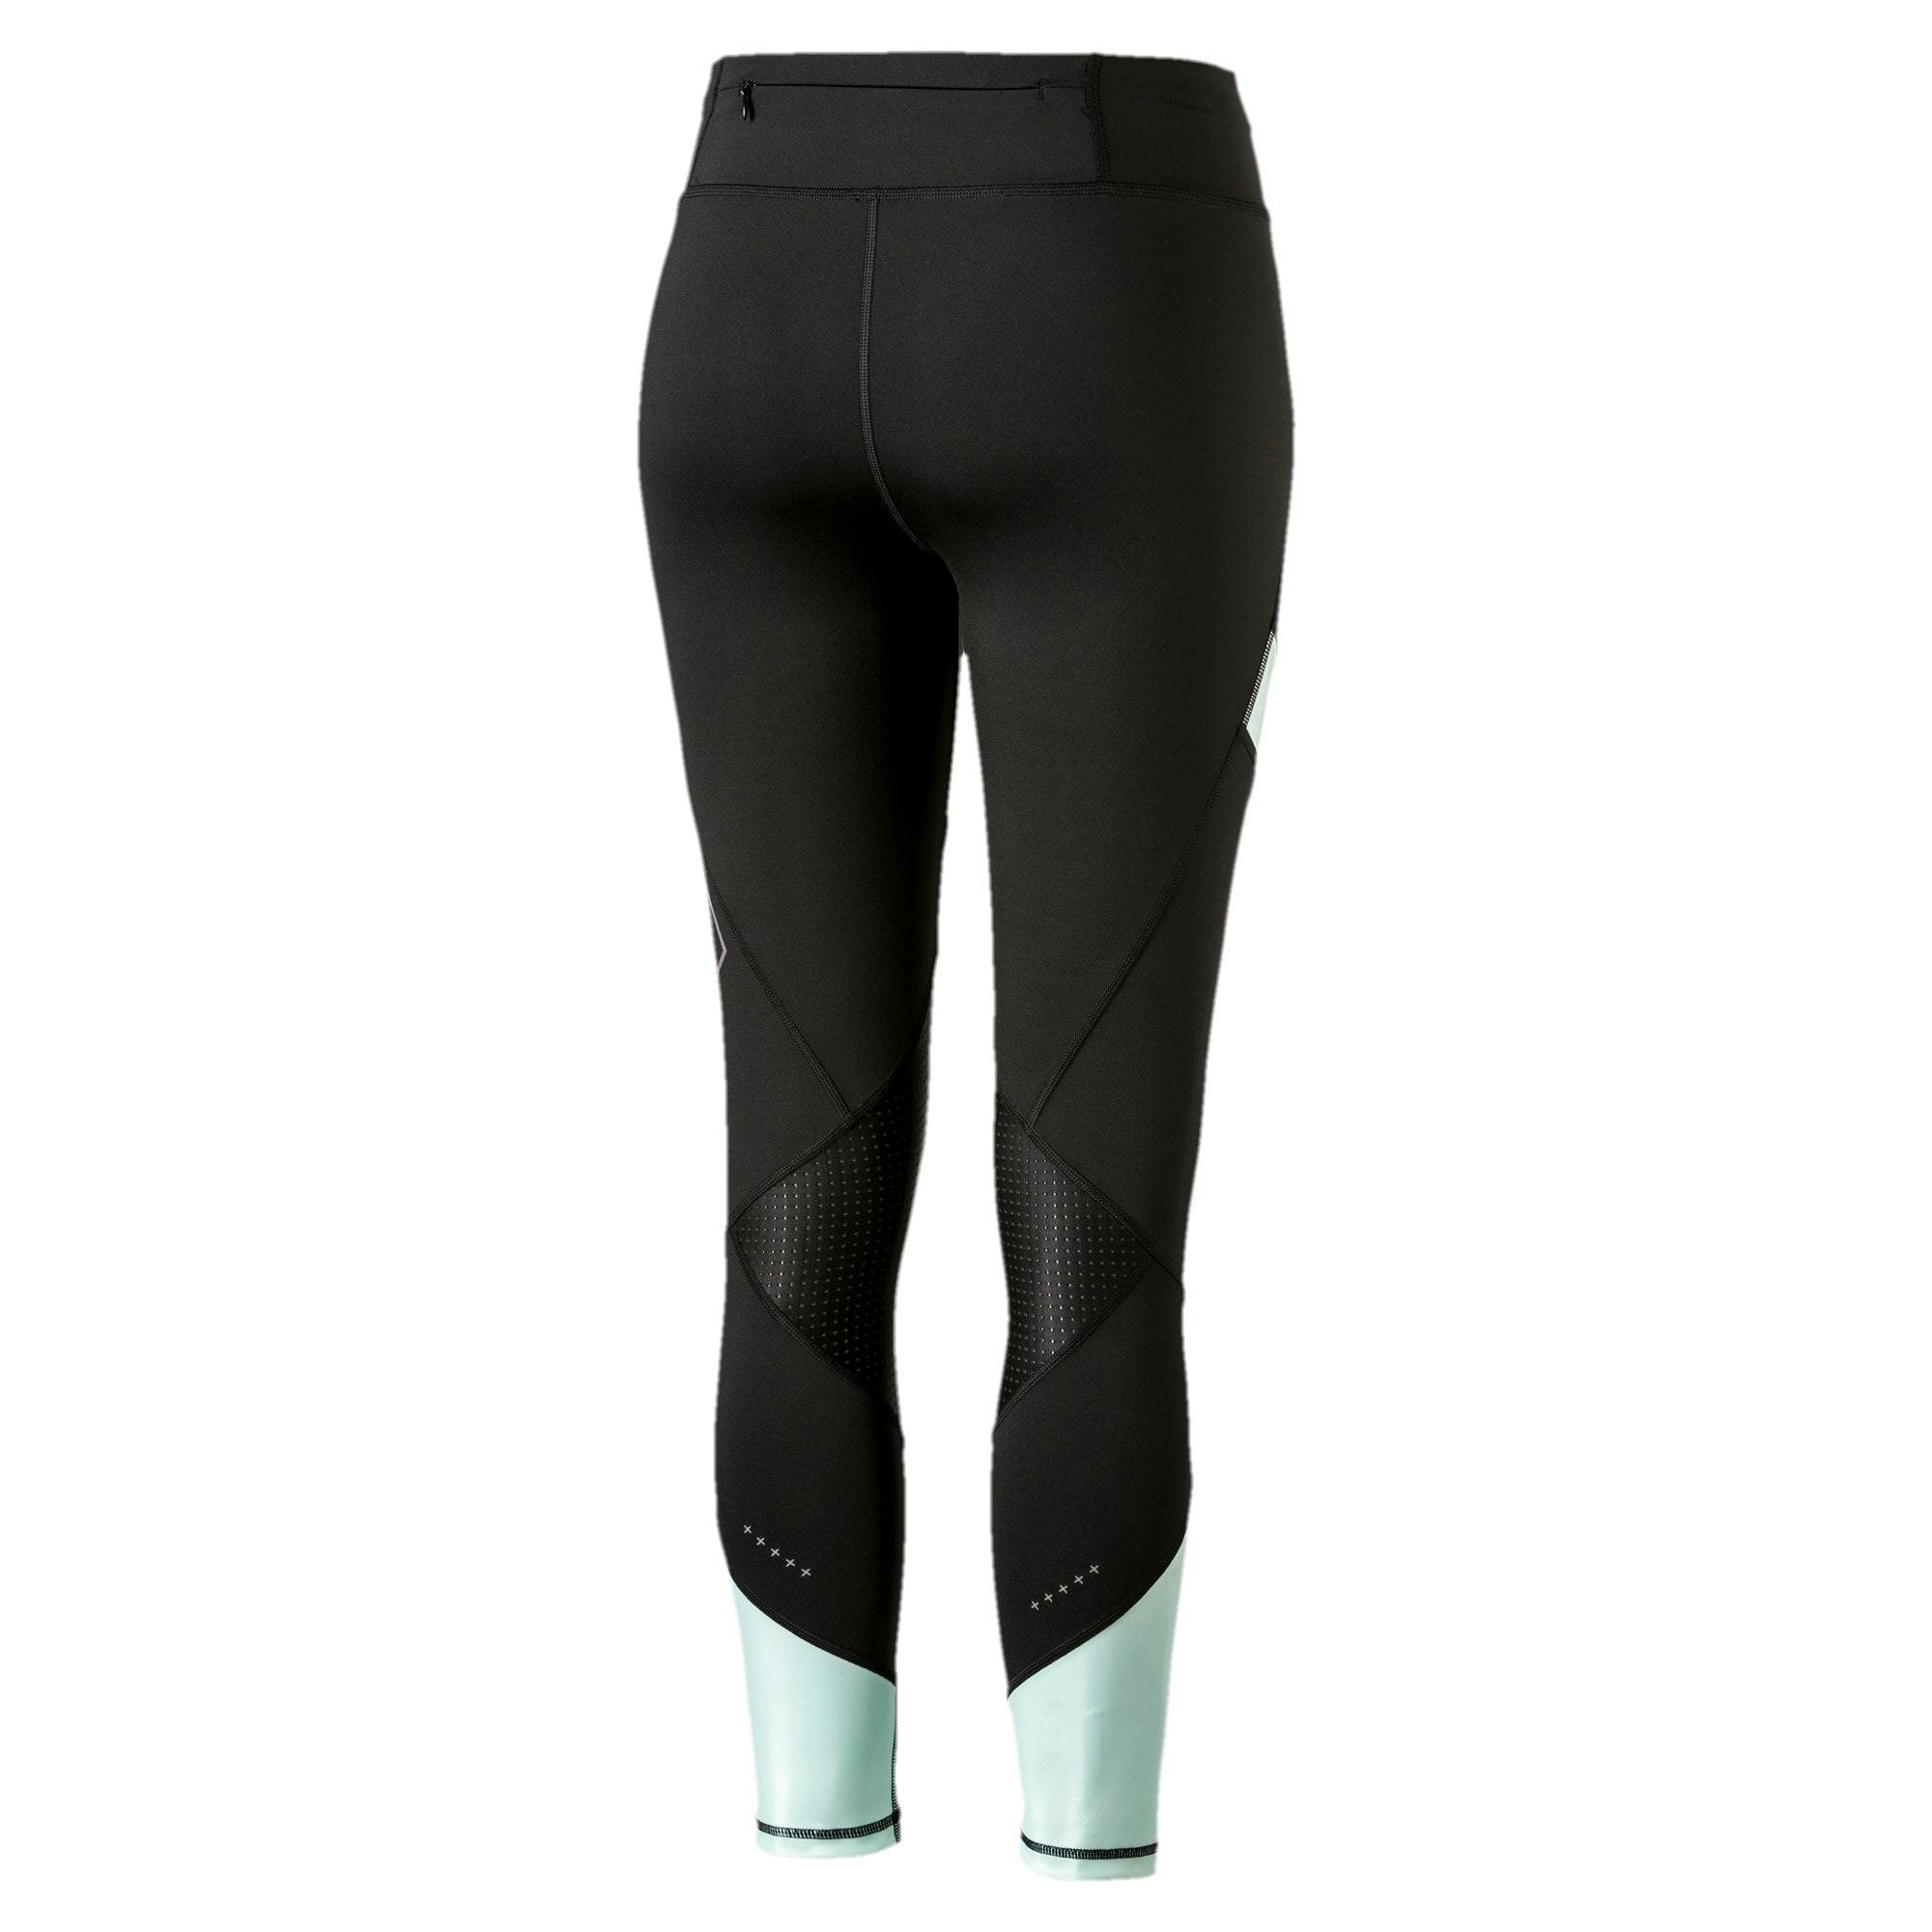 Thumbnail 5 of Elite Women's Running Leggings, Puma Black-Fair Aqua, medium-SEA